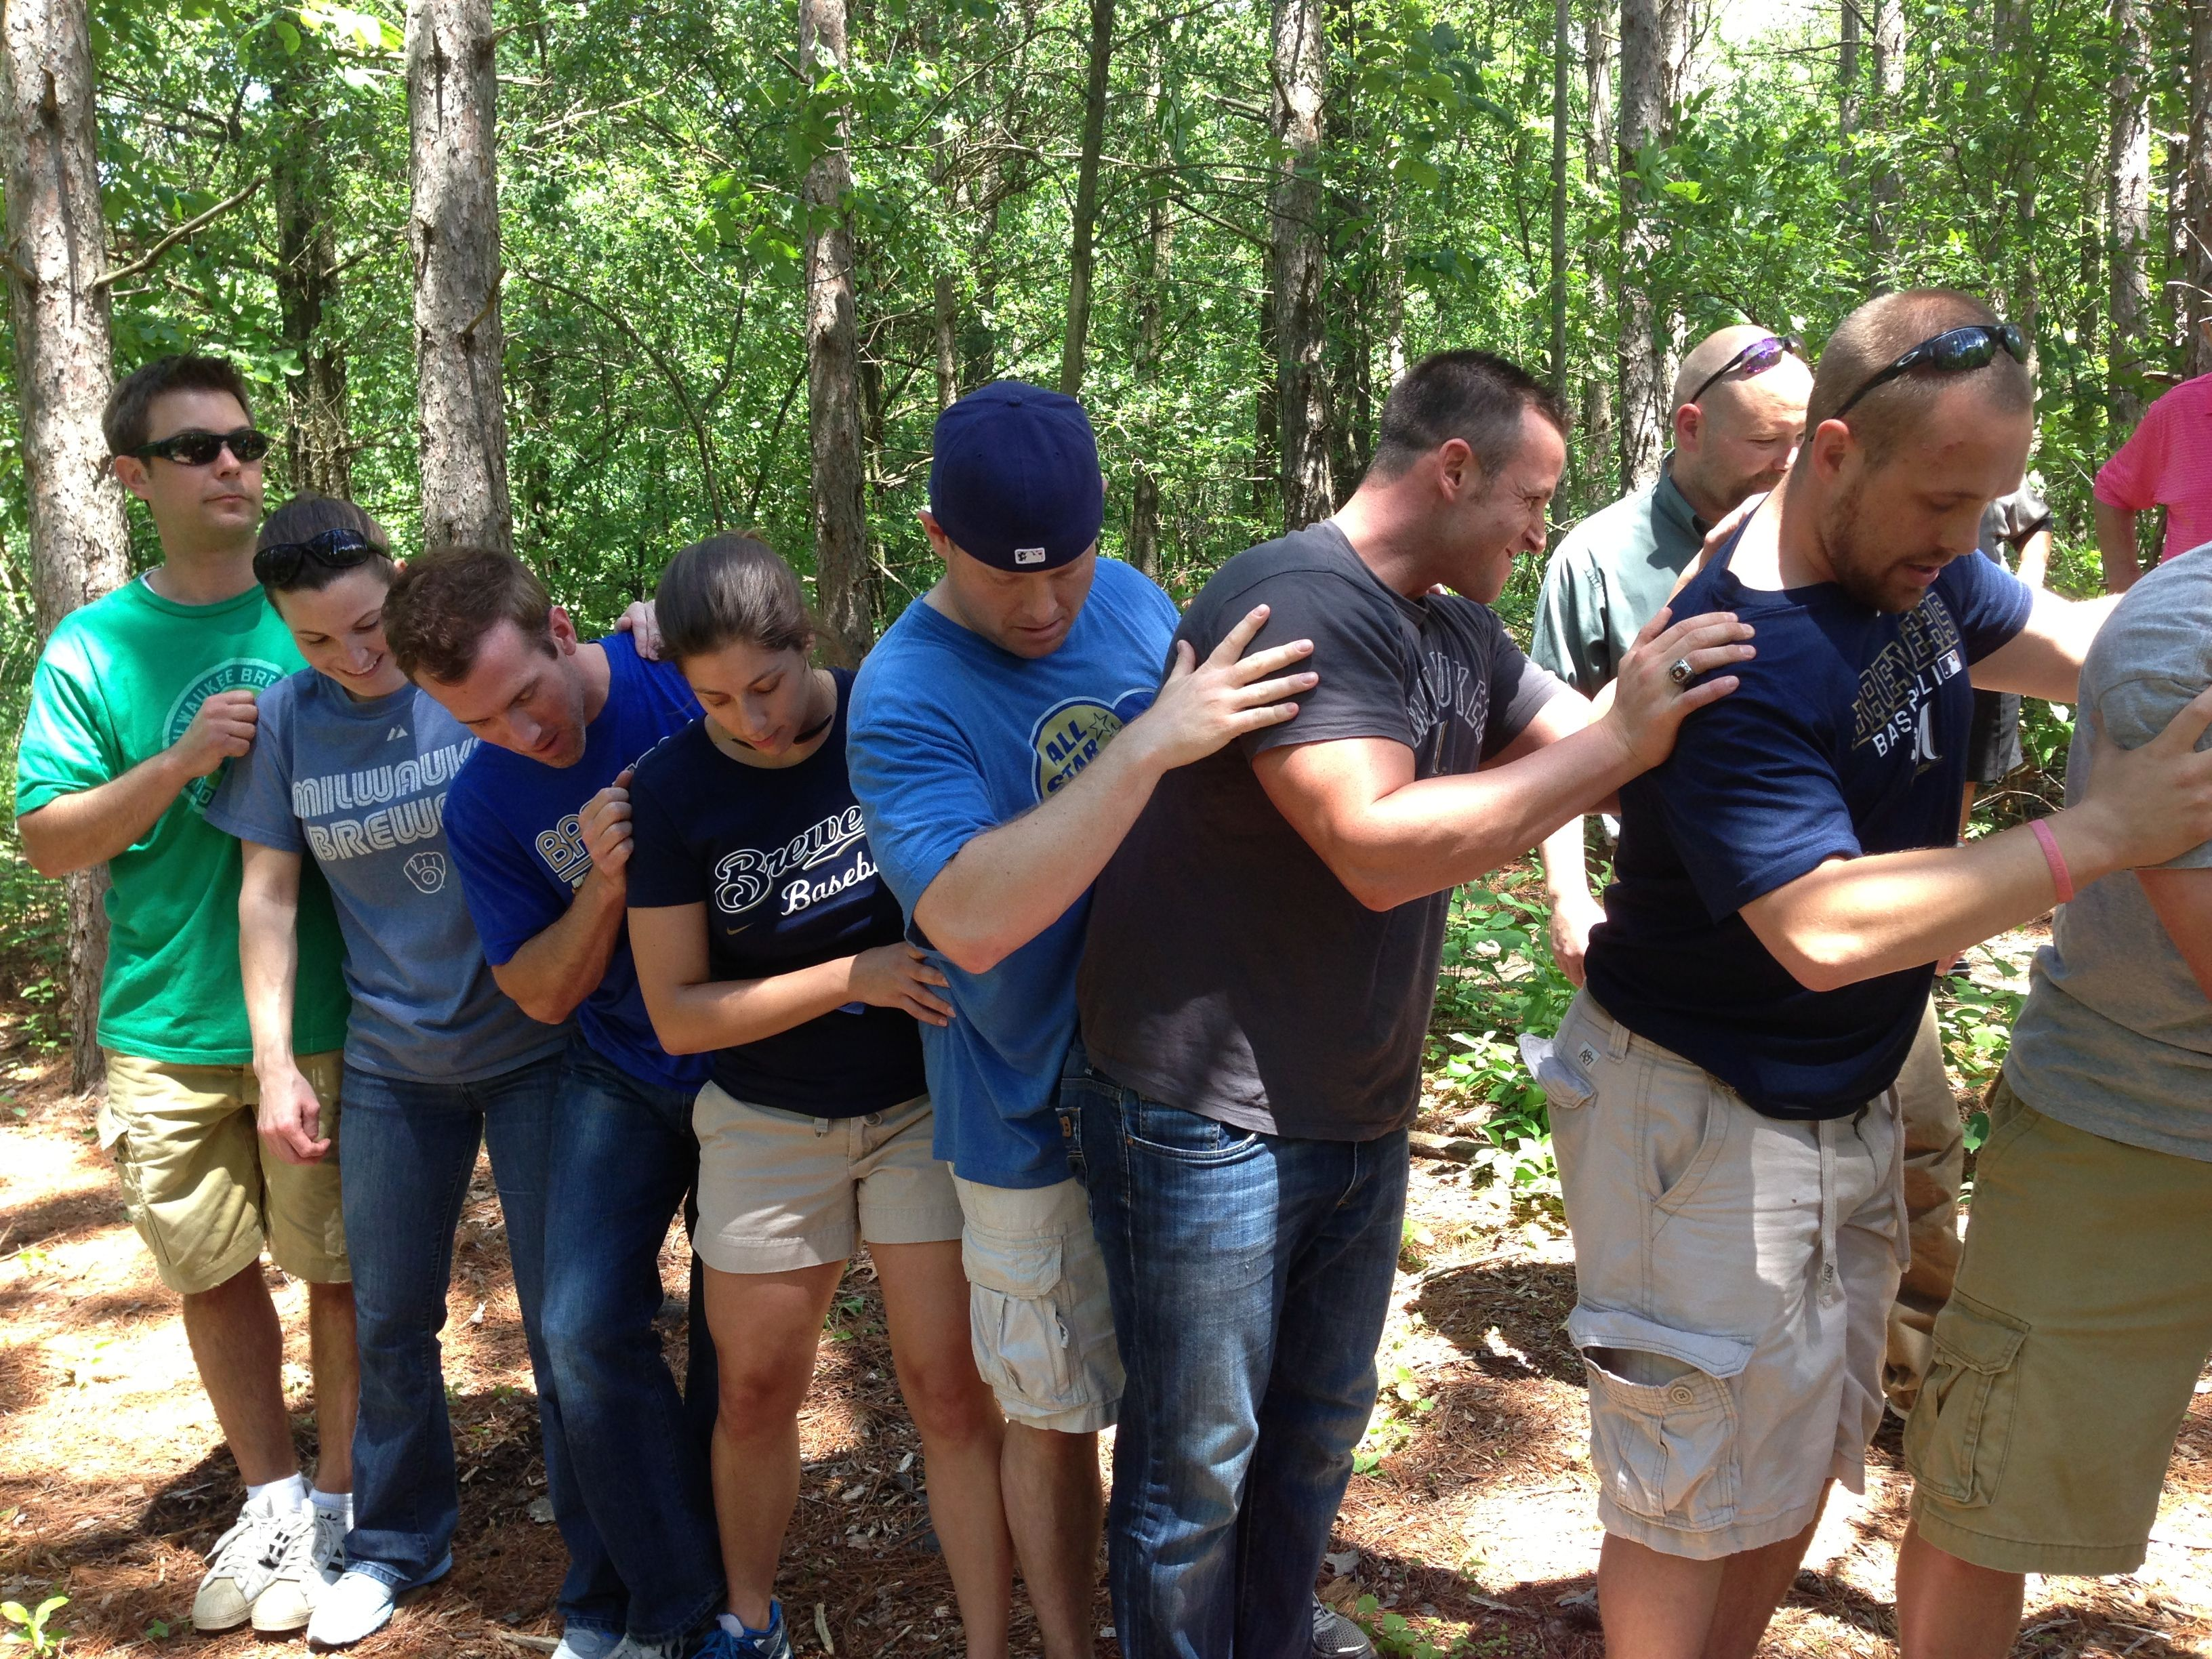 outdoor team building activities for work